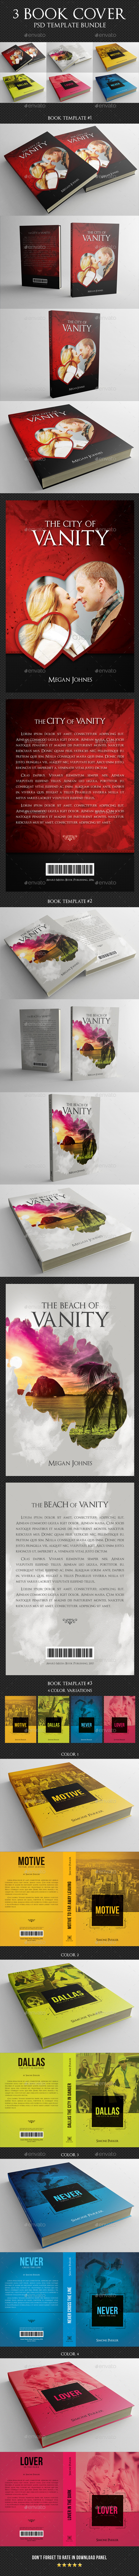 3 in 1 Book Cover Template Bundle 03 - Miscellaneous Print Templates